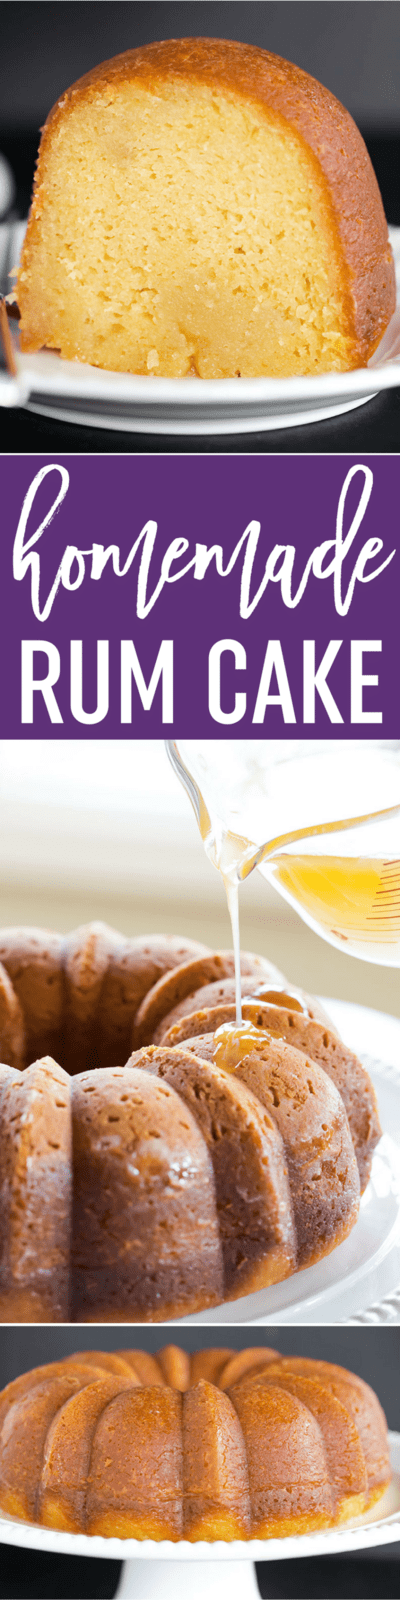 Recipe for a rum cake made from scratch